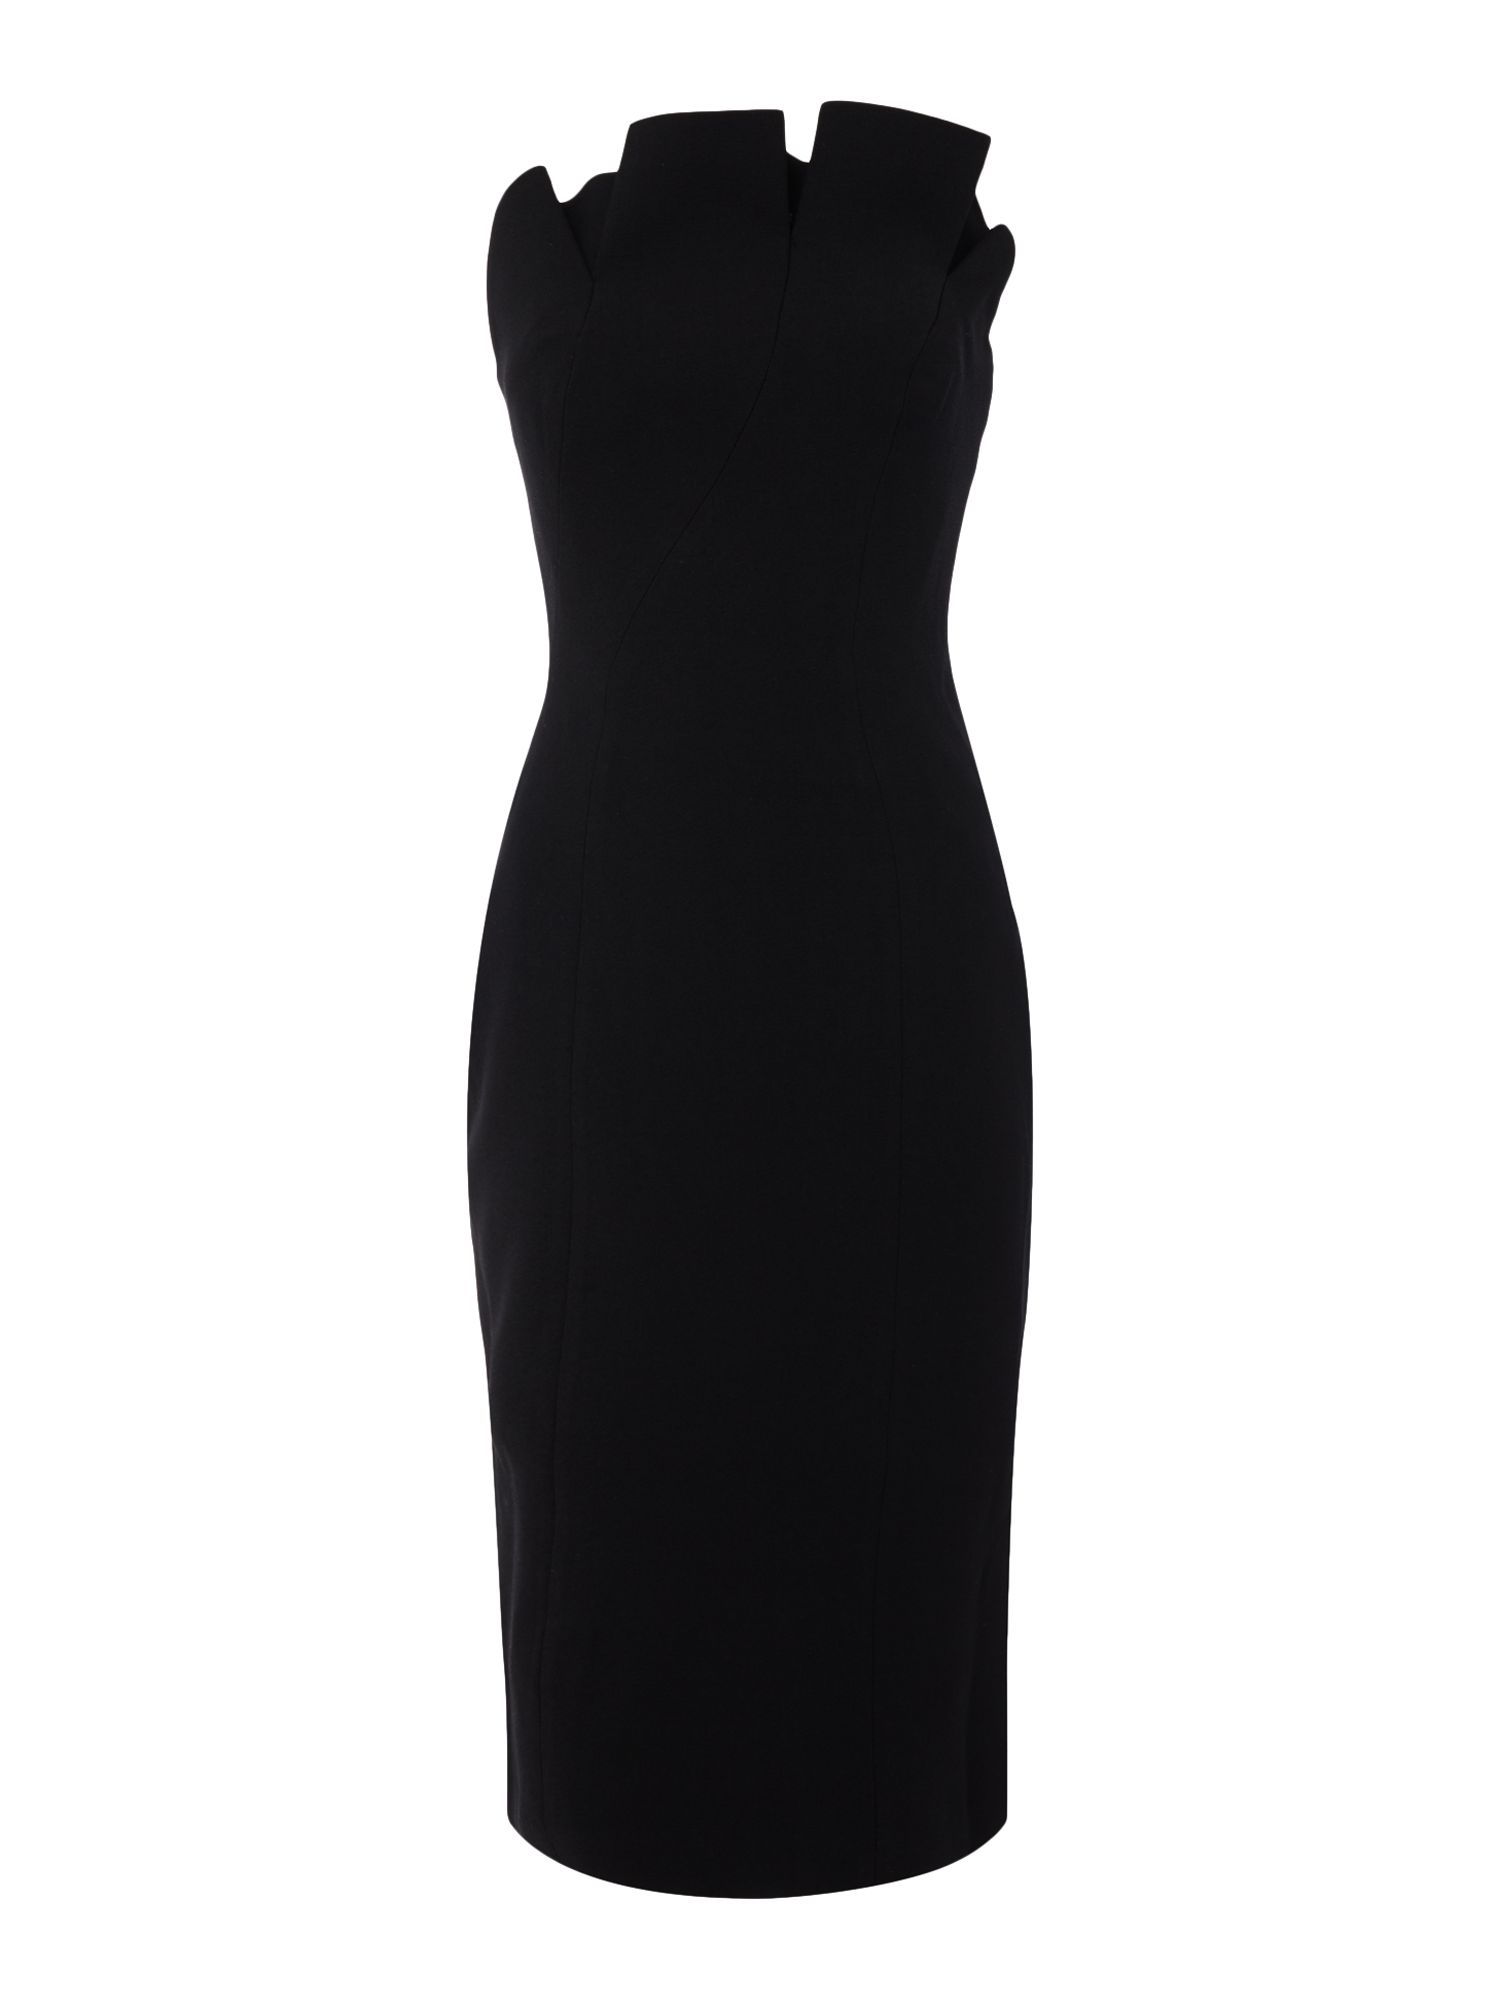 Keepsake Strapless Bodycon Mini Dress, Black